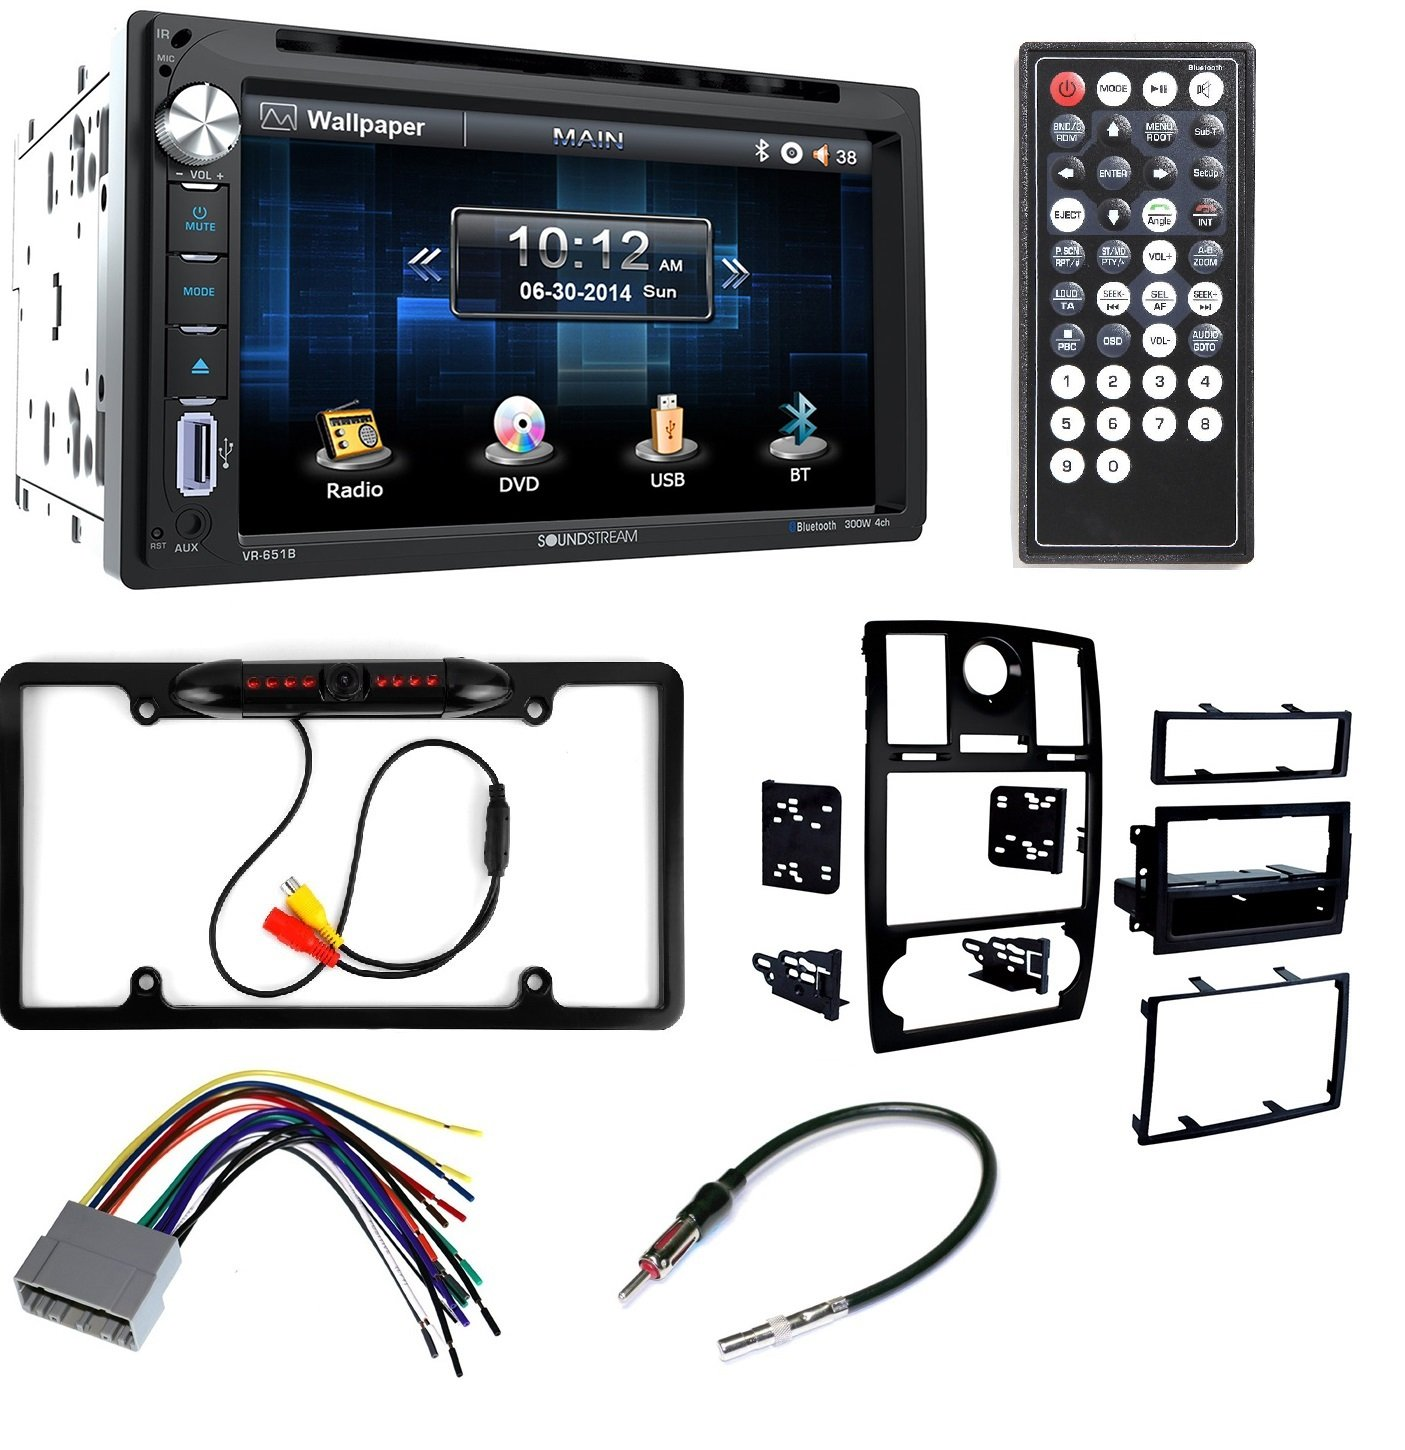 Metra 99-6516B Single/Double DIN Mounting Kit with OEM Bezel for 2005-07 Chrysler 300 Vehicles + Soundstream VR-651B Double DIN Multimedia Source Unit with 6.5″ LCD Touch Screen/Bluetooth by CACHE, METRA, AMERICAN INTERNATIONAL, PIONEER